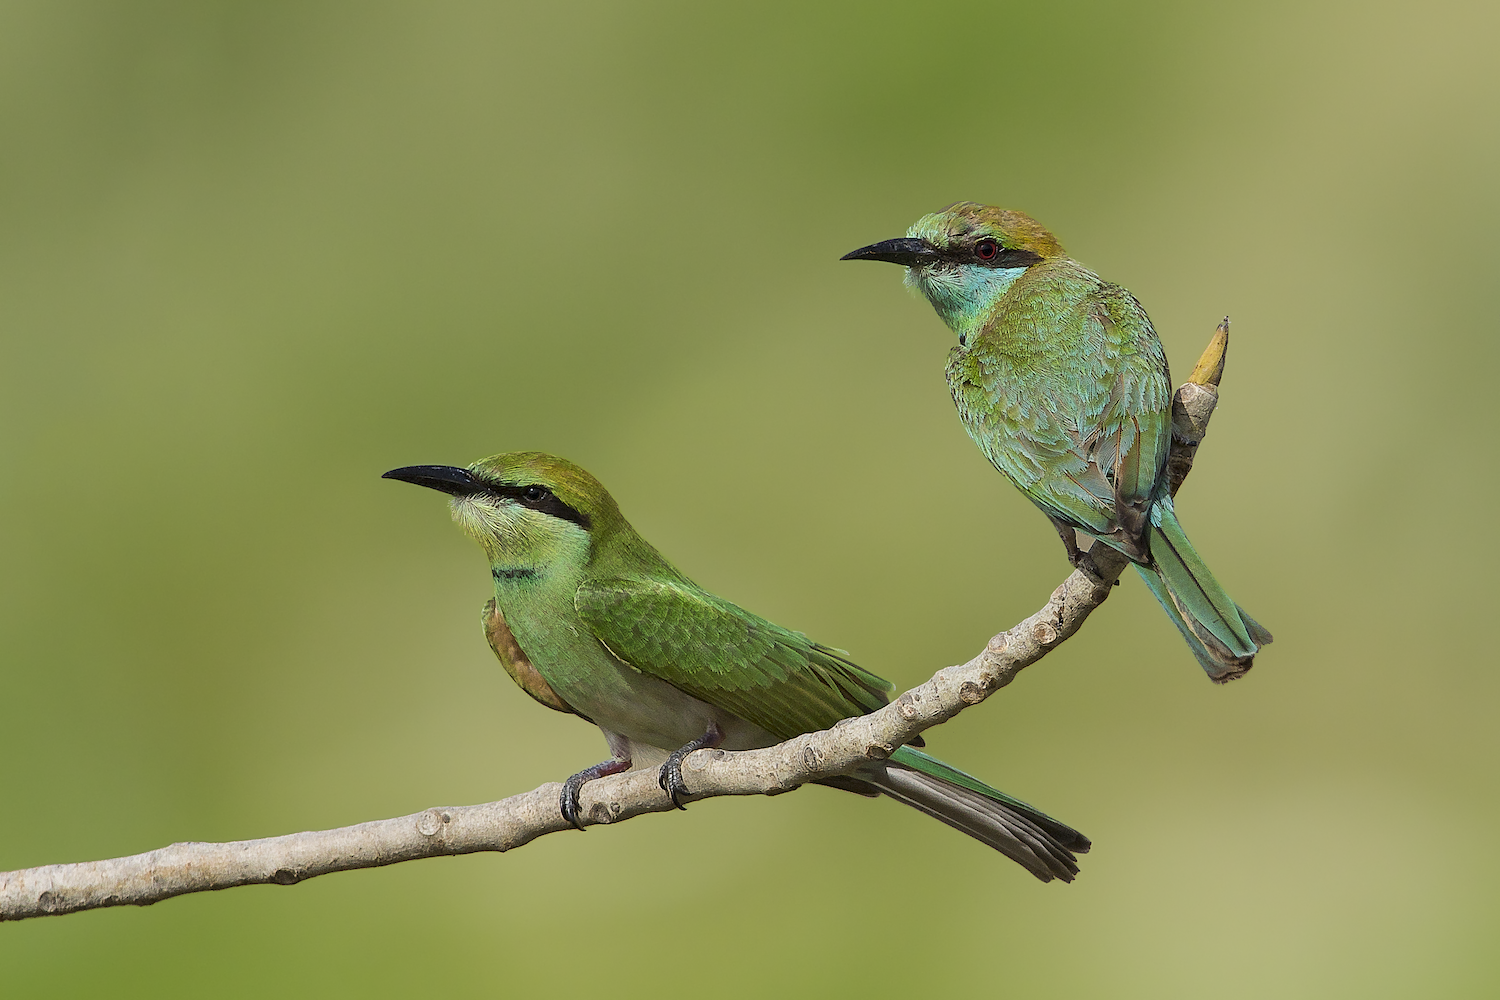 Shallow-focus shot of two Asian Green Bee-Eaters perched on a thin, curving branch.